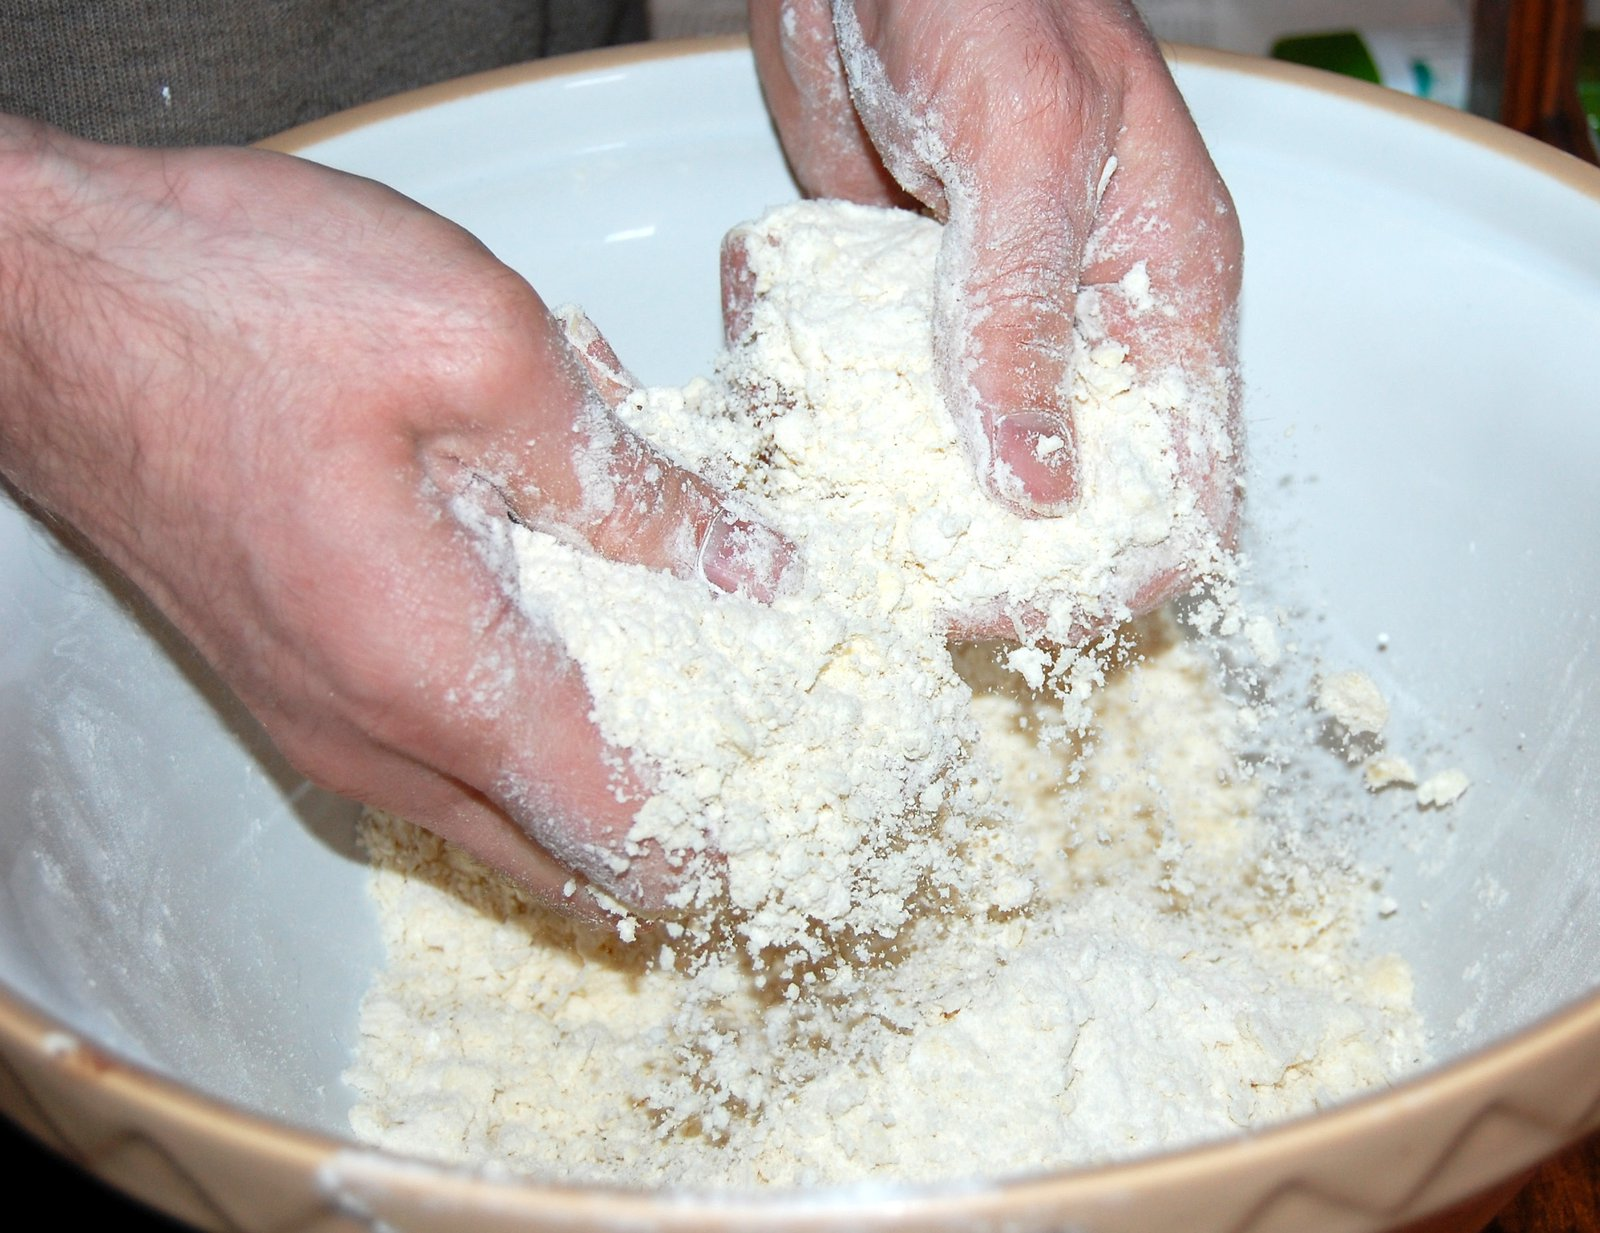 Making pastry: rubbing fats into flour